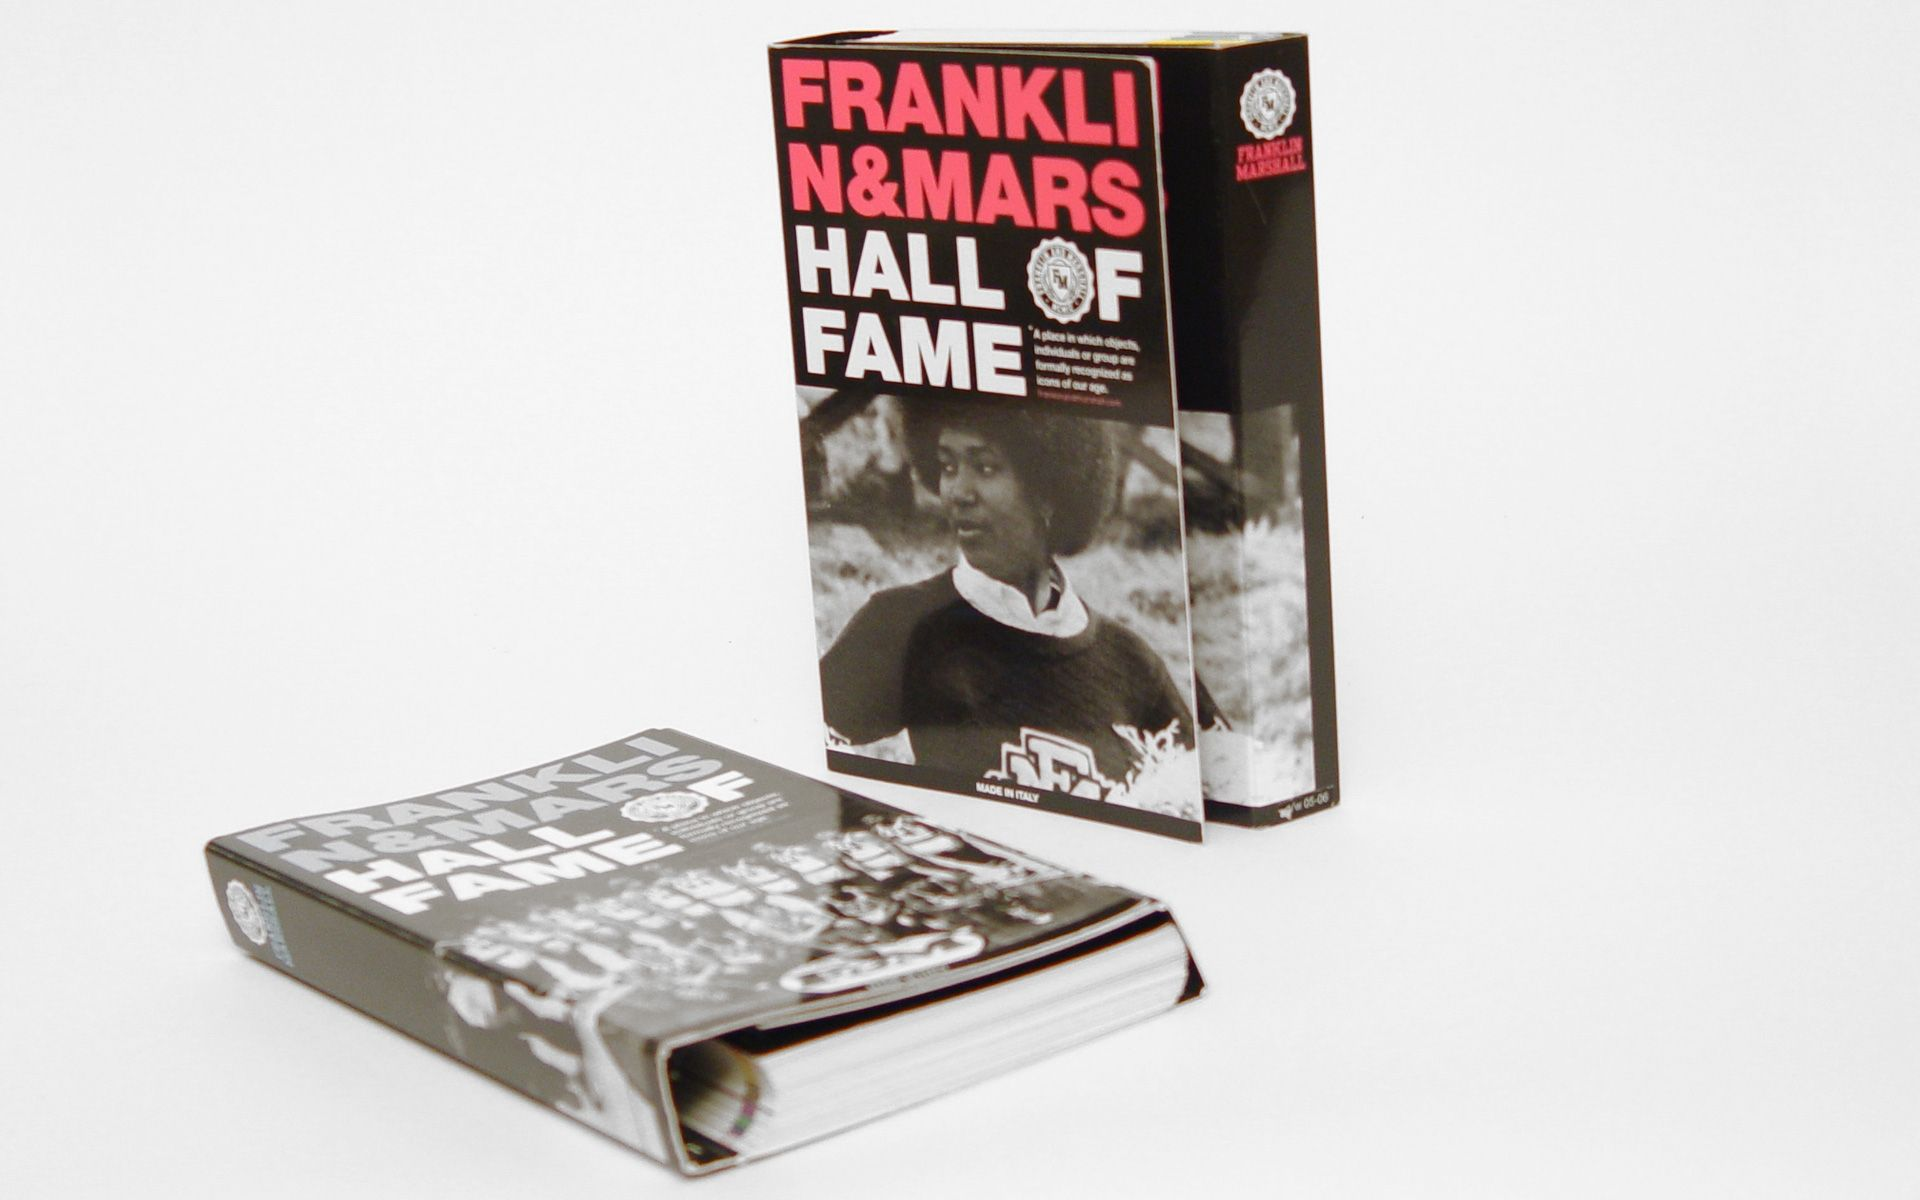 Hall of Fame supports